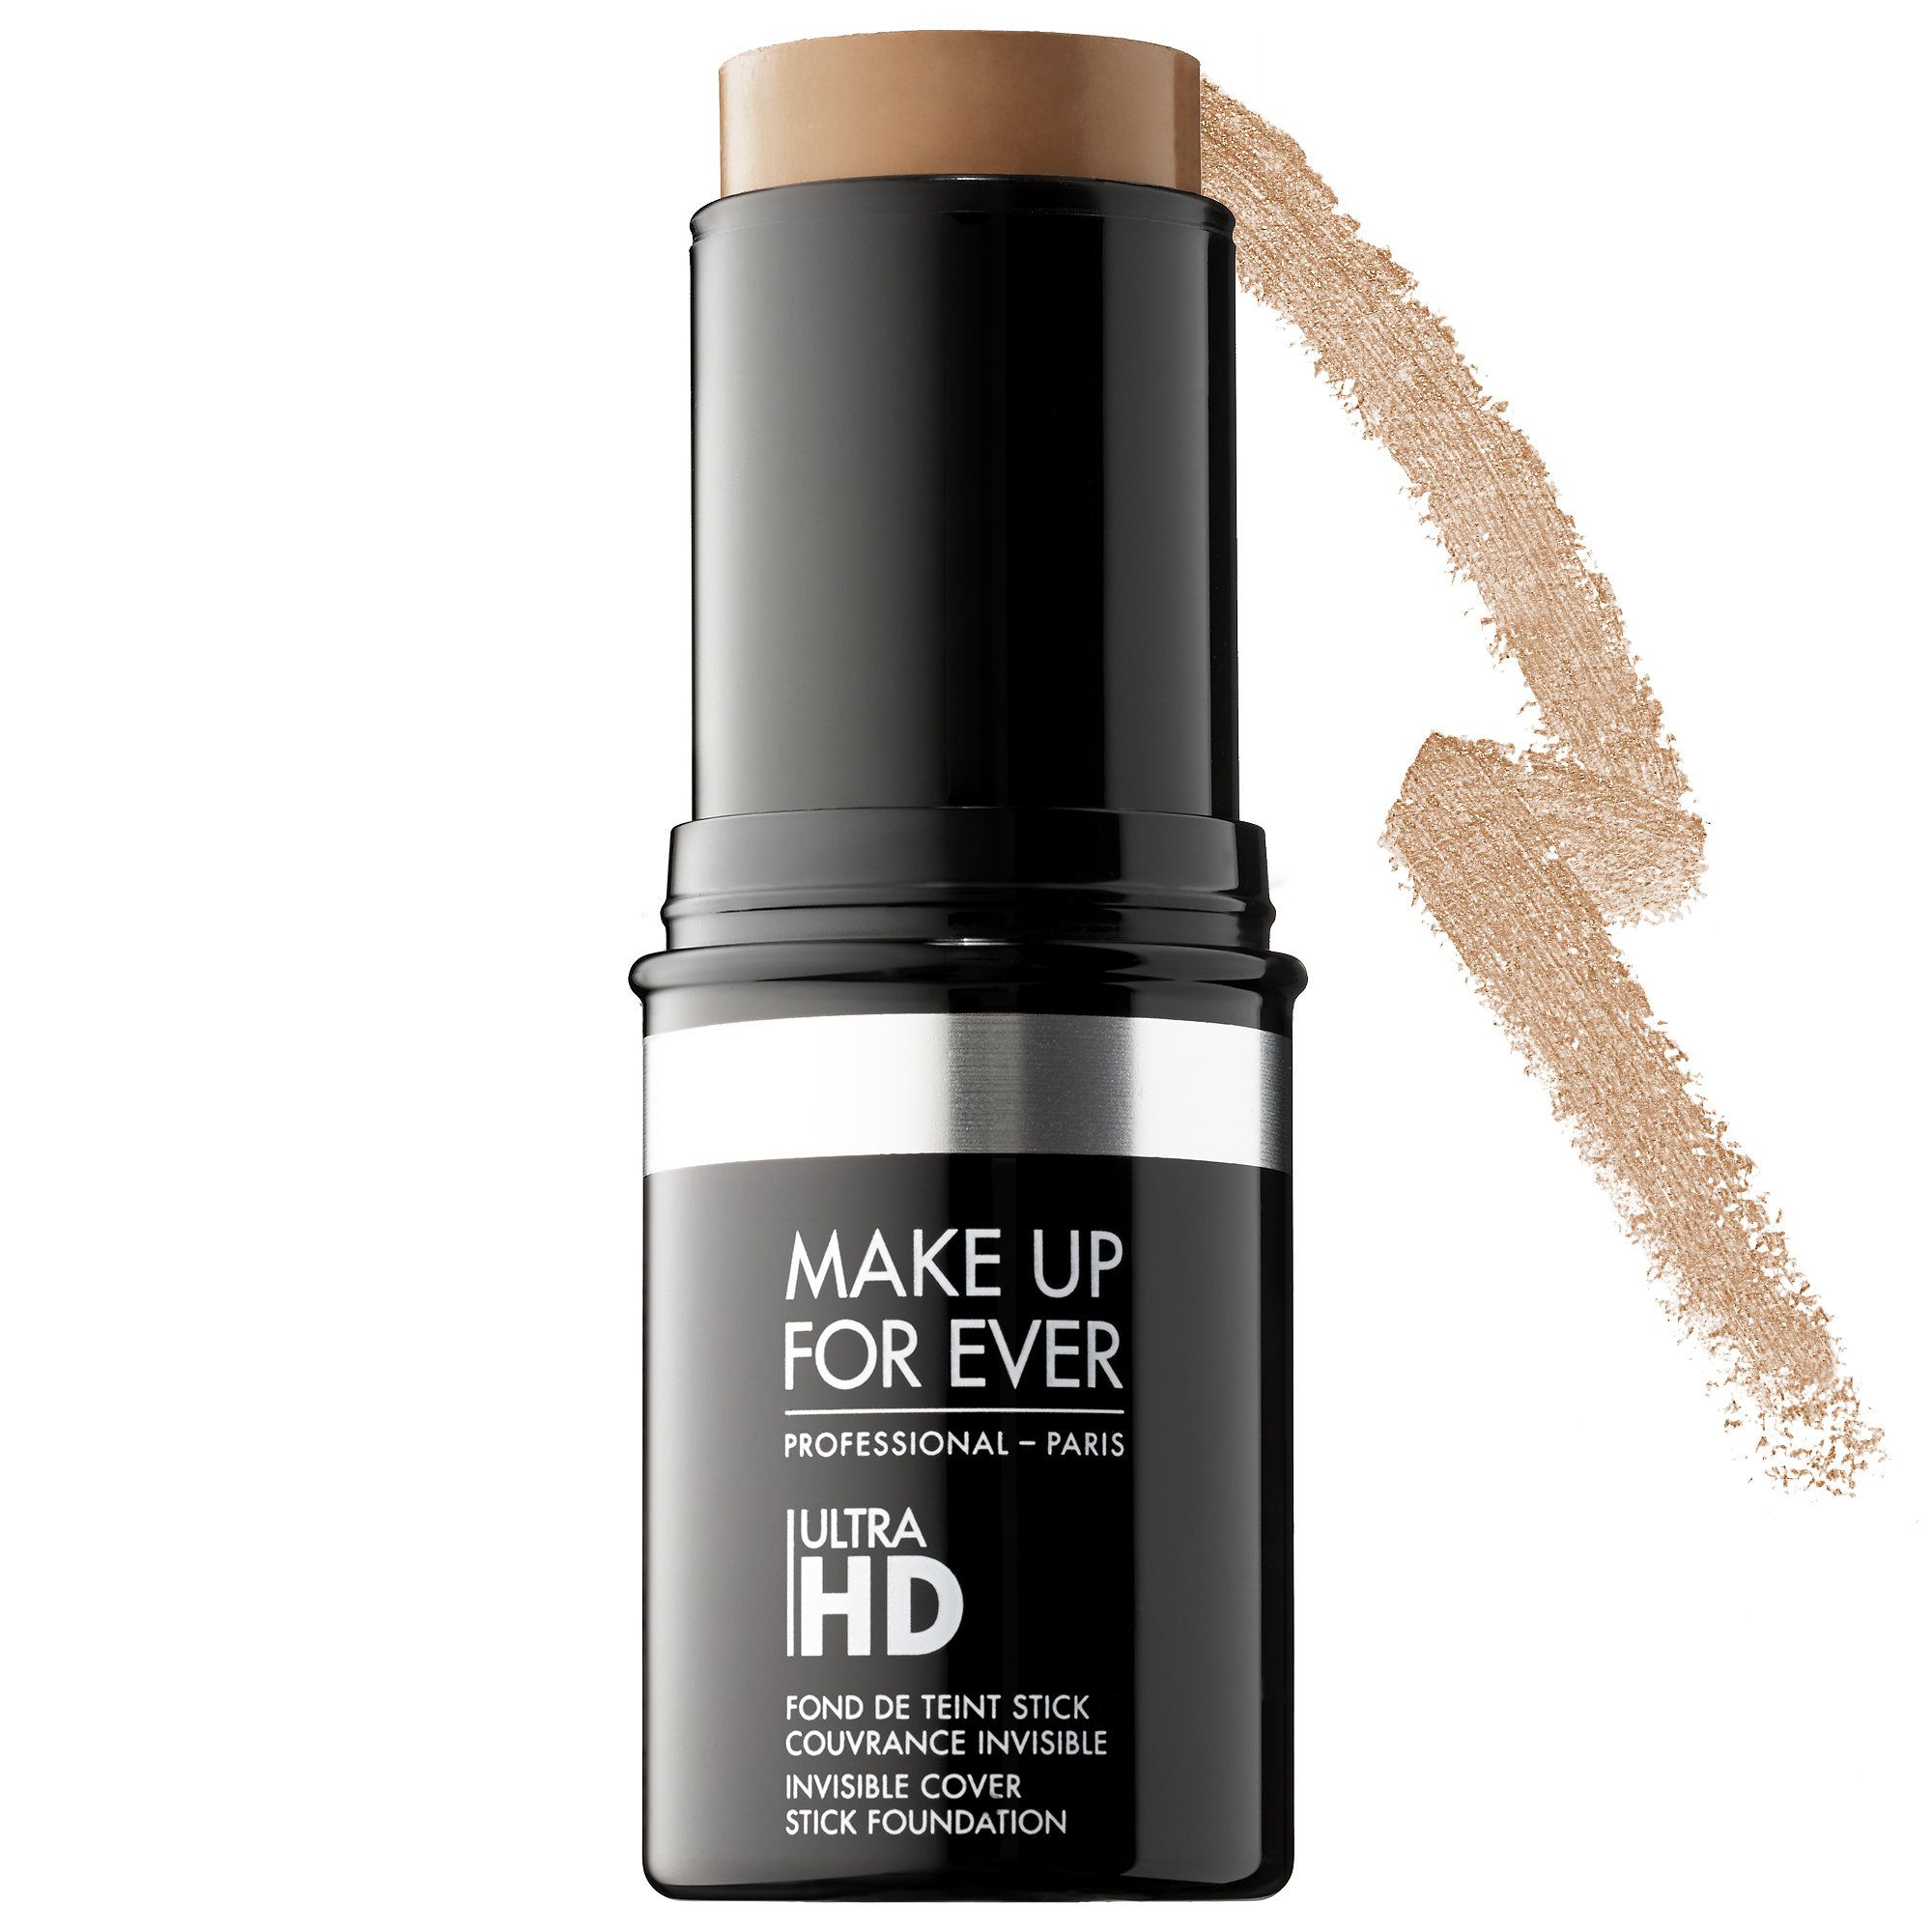 Ultra HD Invisible Cover Stick Foundation Stick